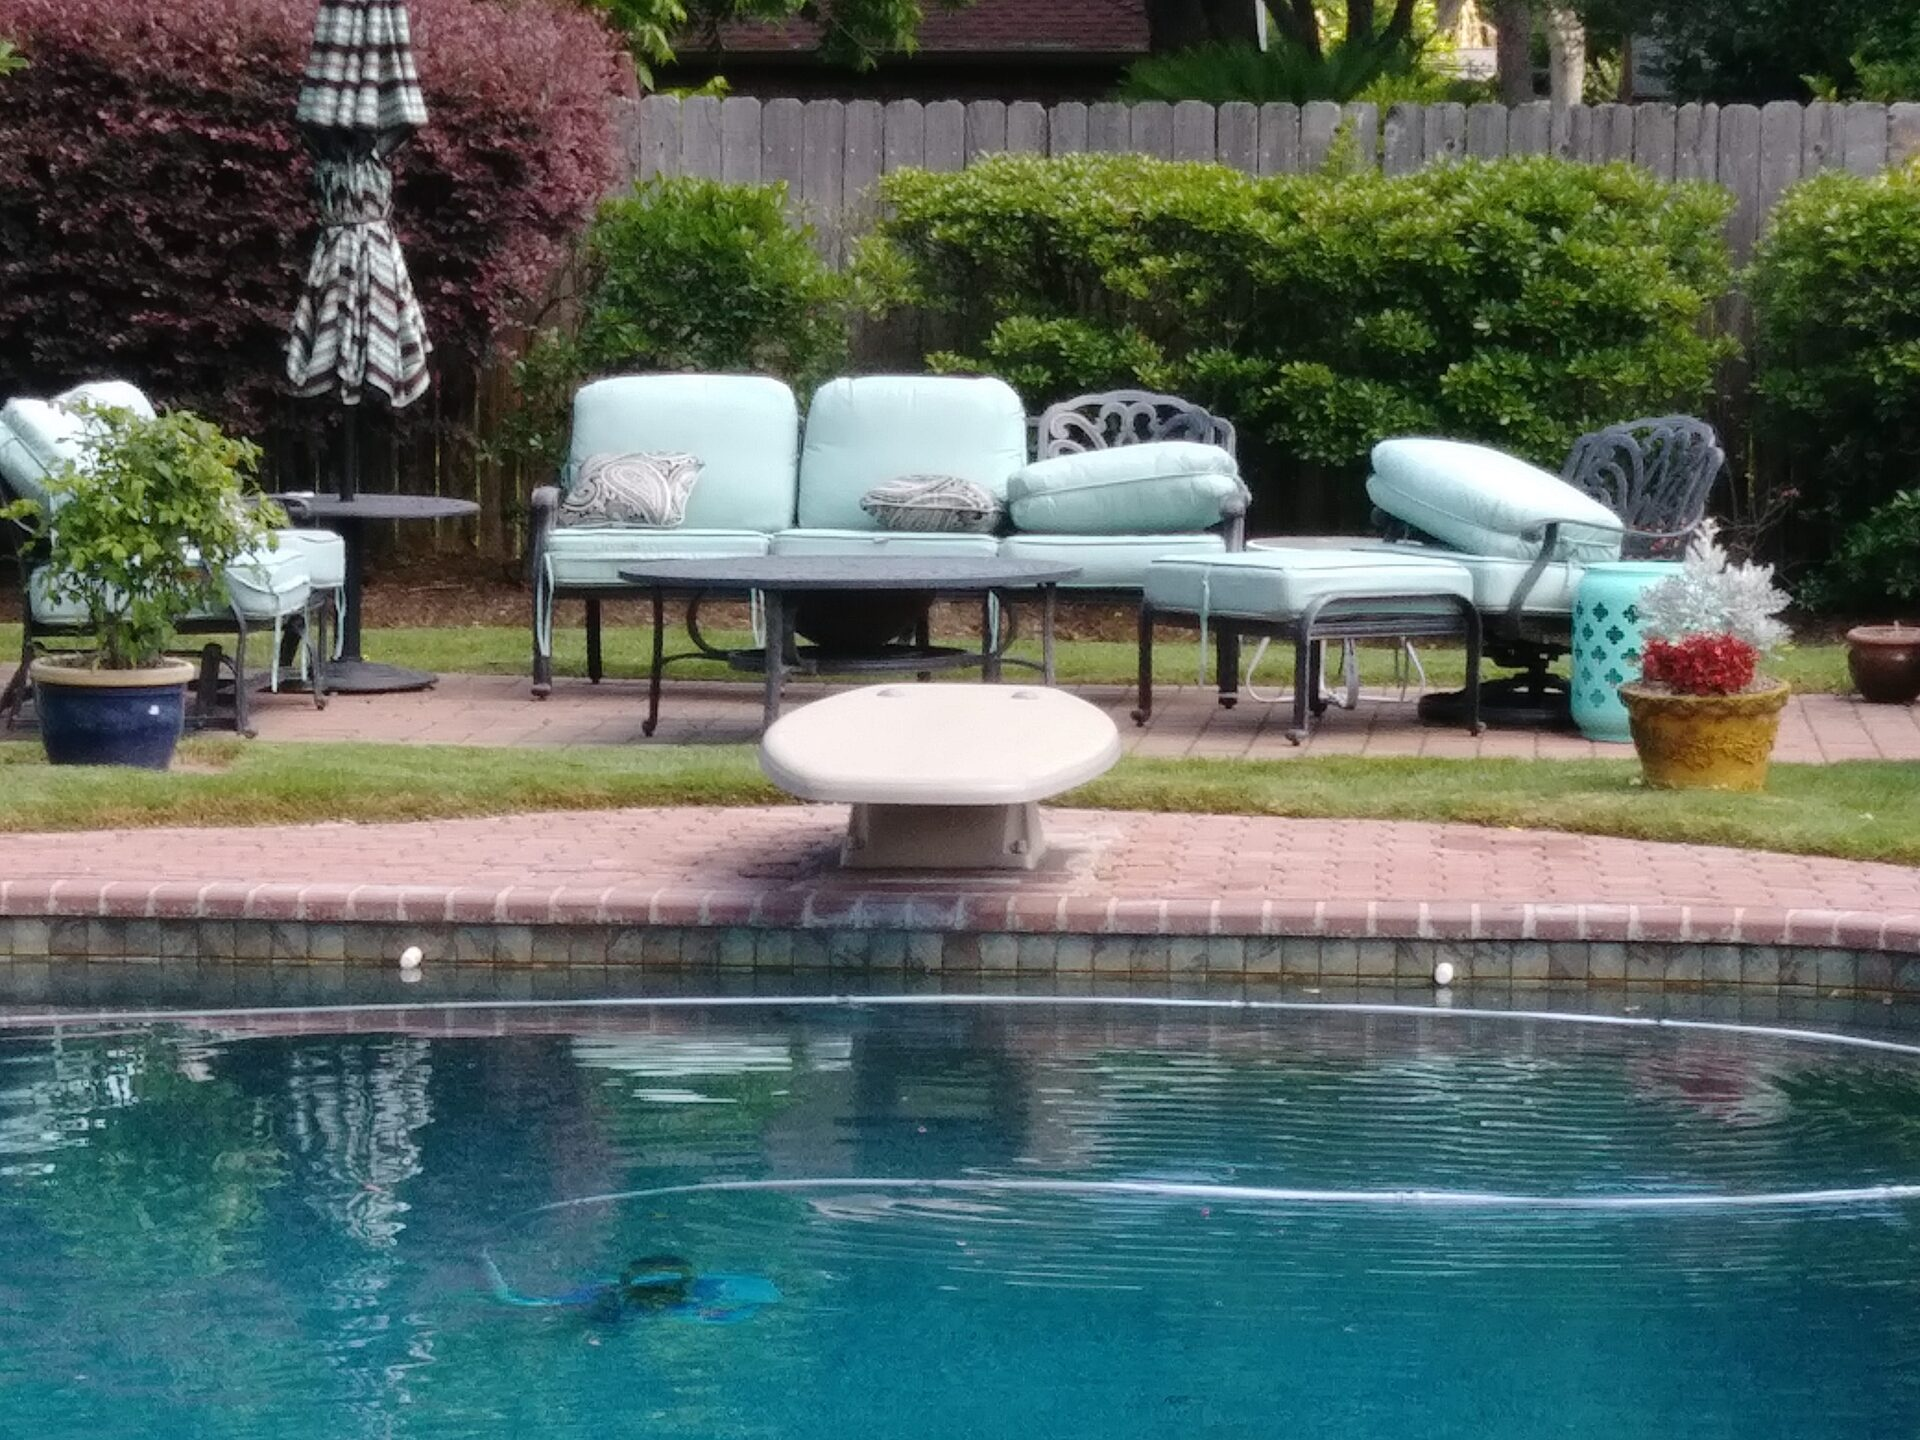 Diving Board Replacement - Jersey Village - After Image002